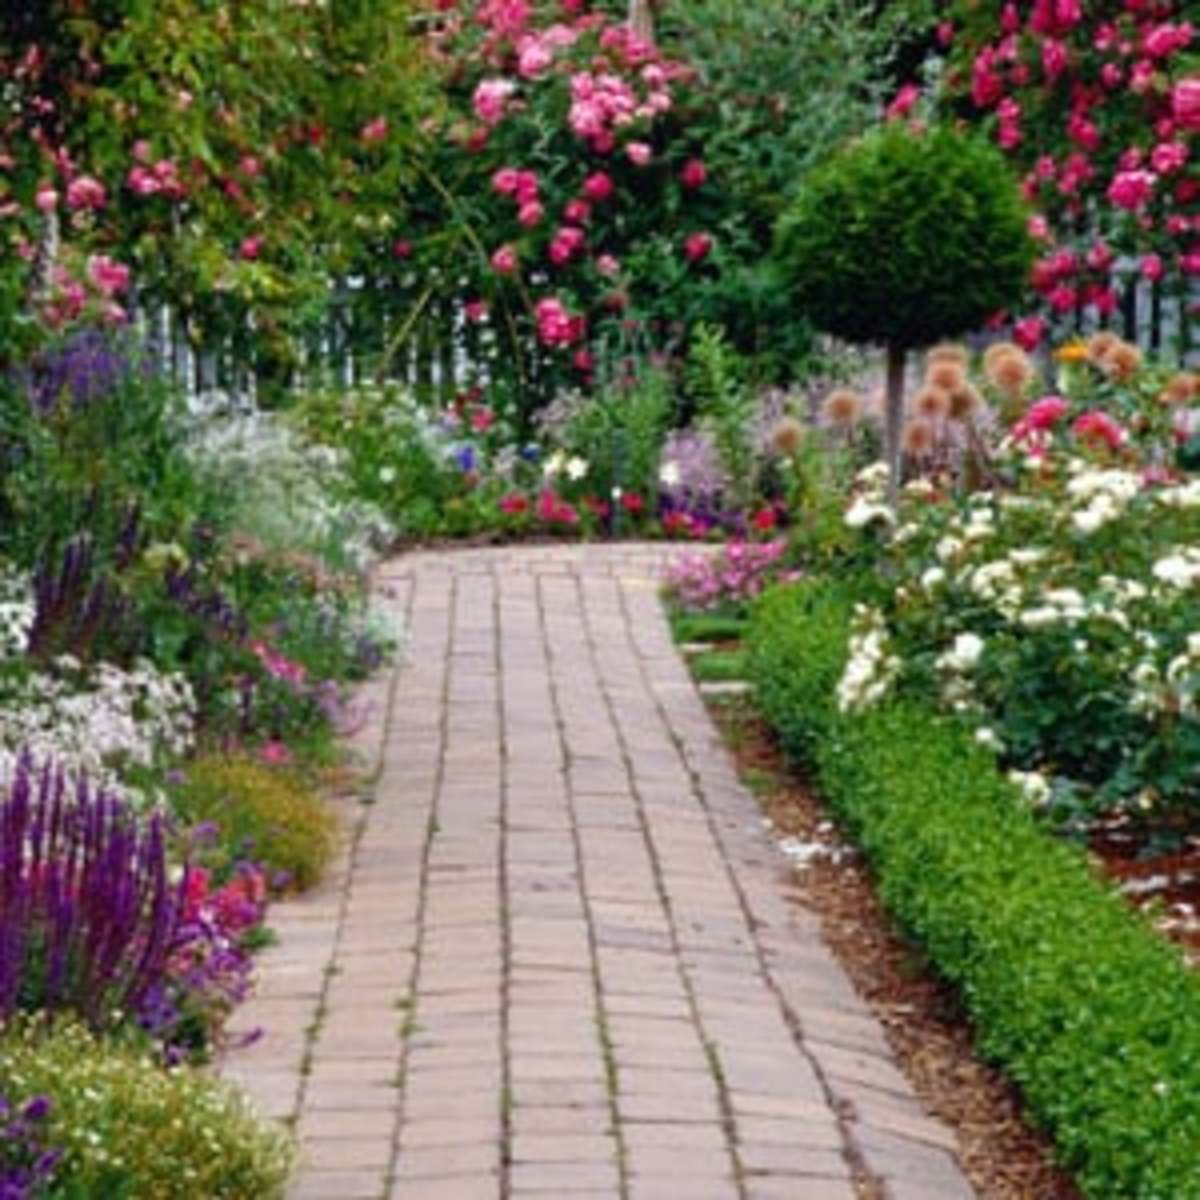 Bricks or pavers make an interesting walkway between flower beds.